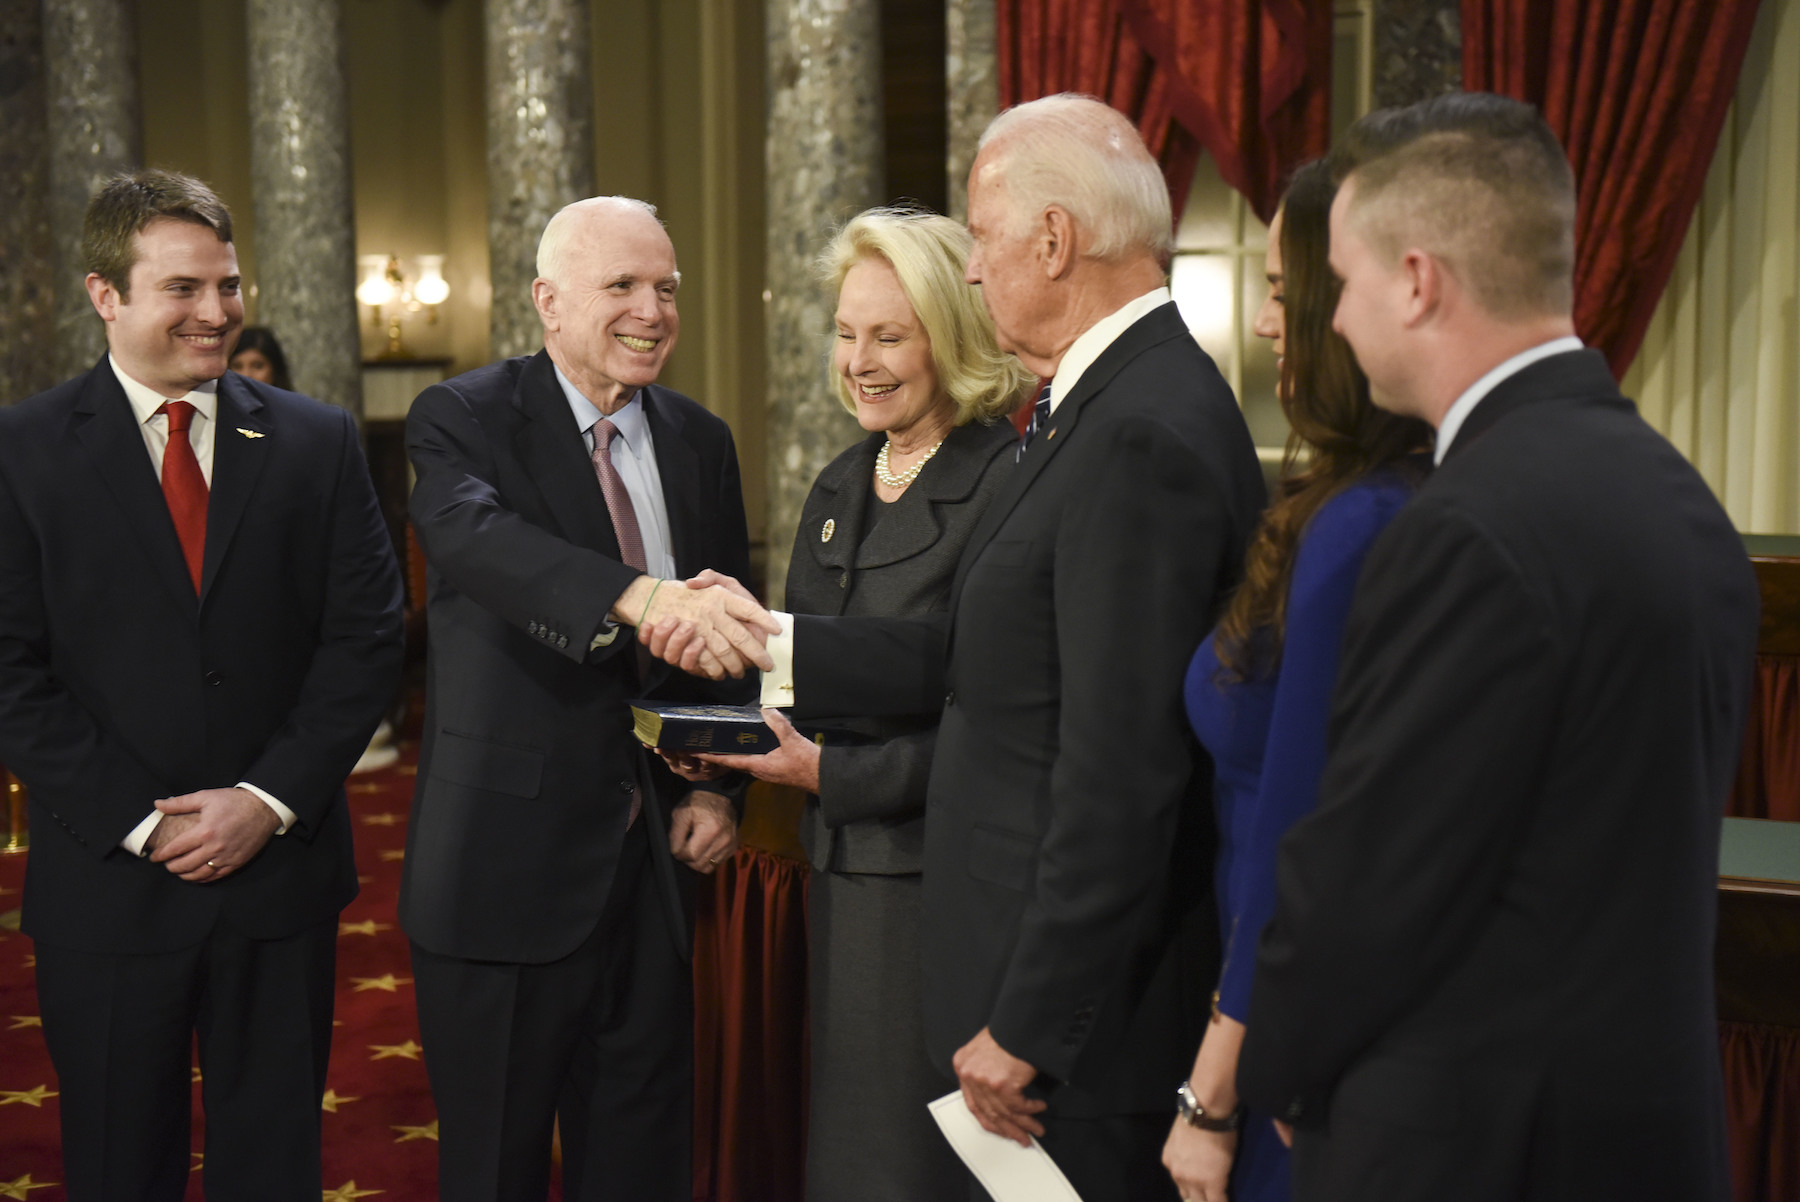 <div class='meta'><div class='origin-logo' data-origin='AP'></div><span class='caption-text' data-credit='AP Photo/Kevin Wolf'>Vice President Joe Biden shakes hands with Sen. John McCain after administering the Senate oath of office during a mock swearing-in ceremony on Tuesday, Jan. 3, 2017.</span></div>